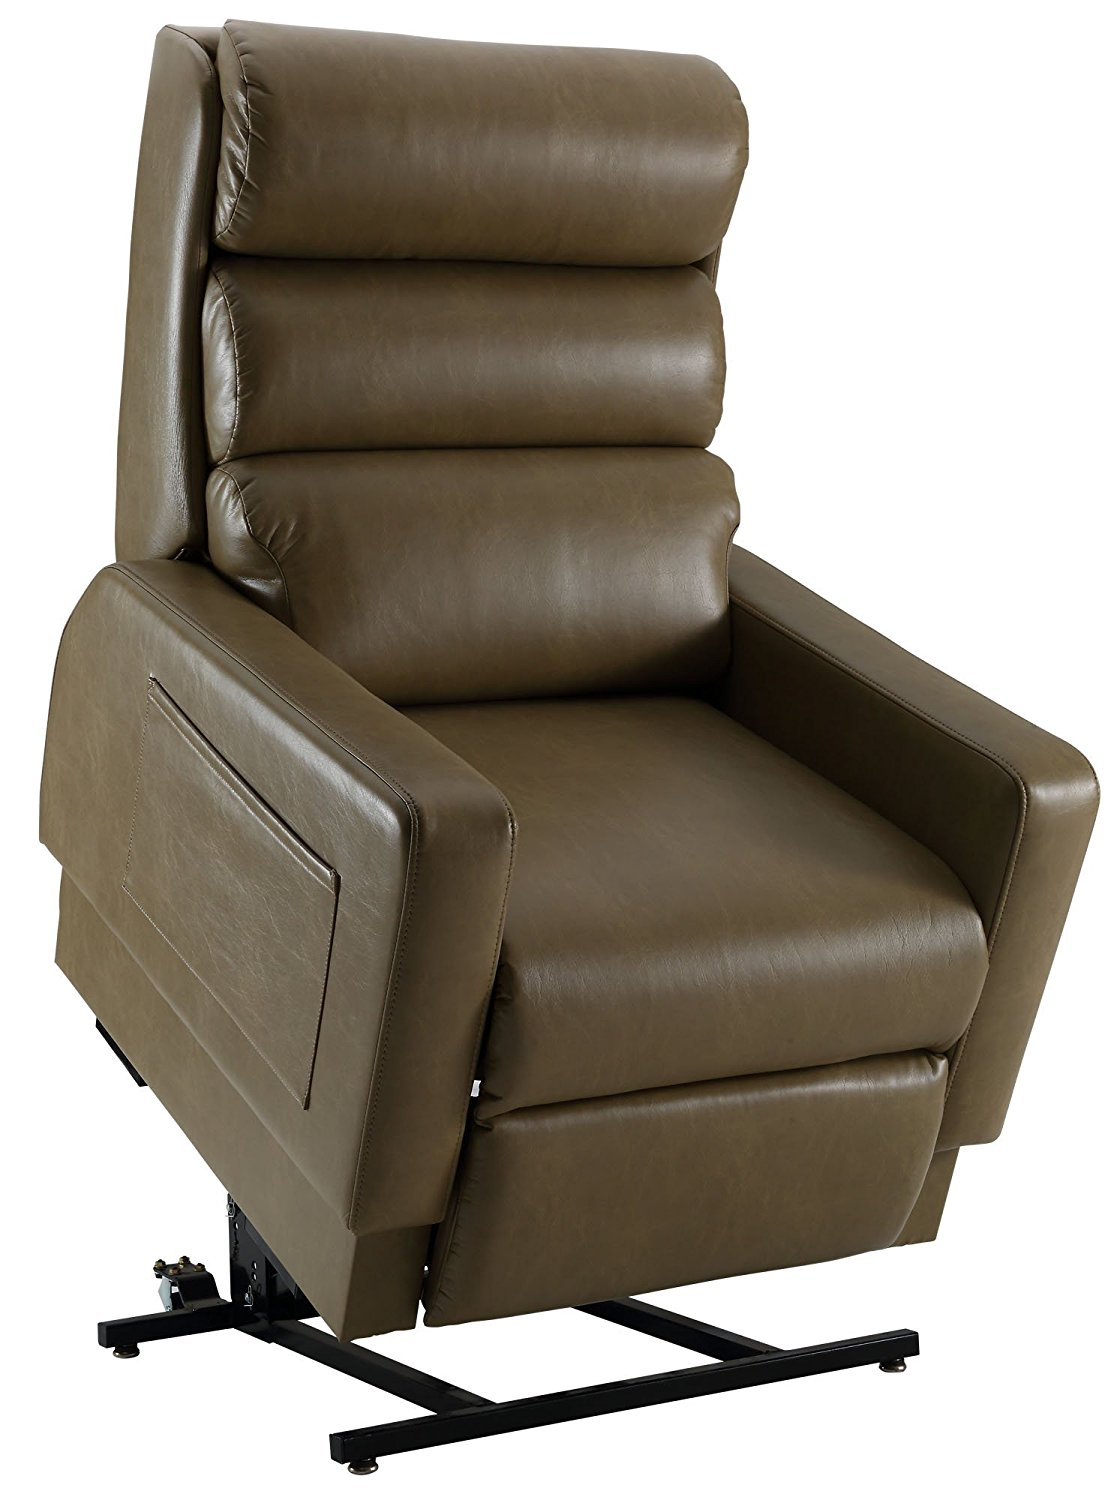 cozzia mc520 layflat infinite position lift chair recliner